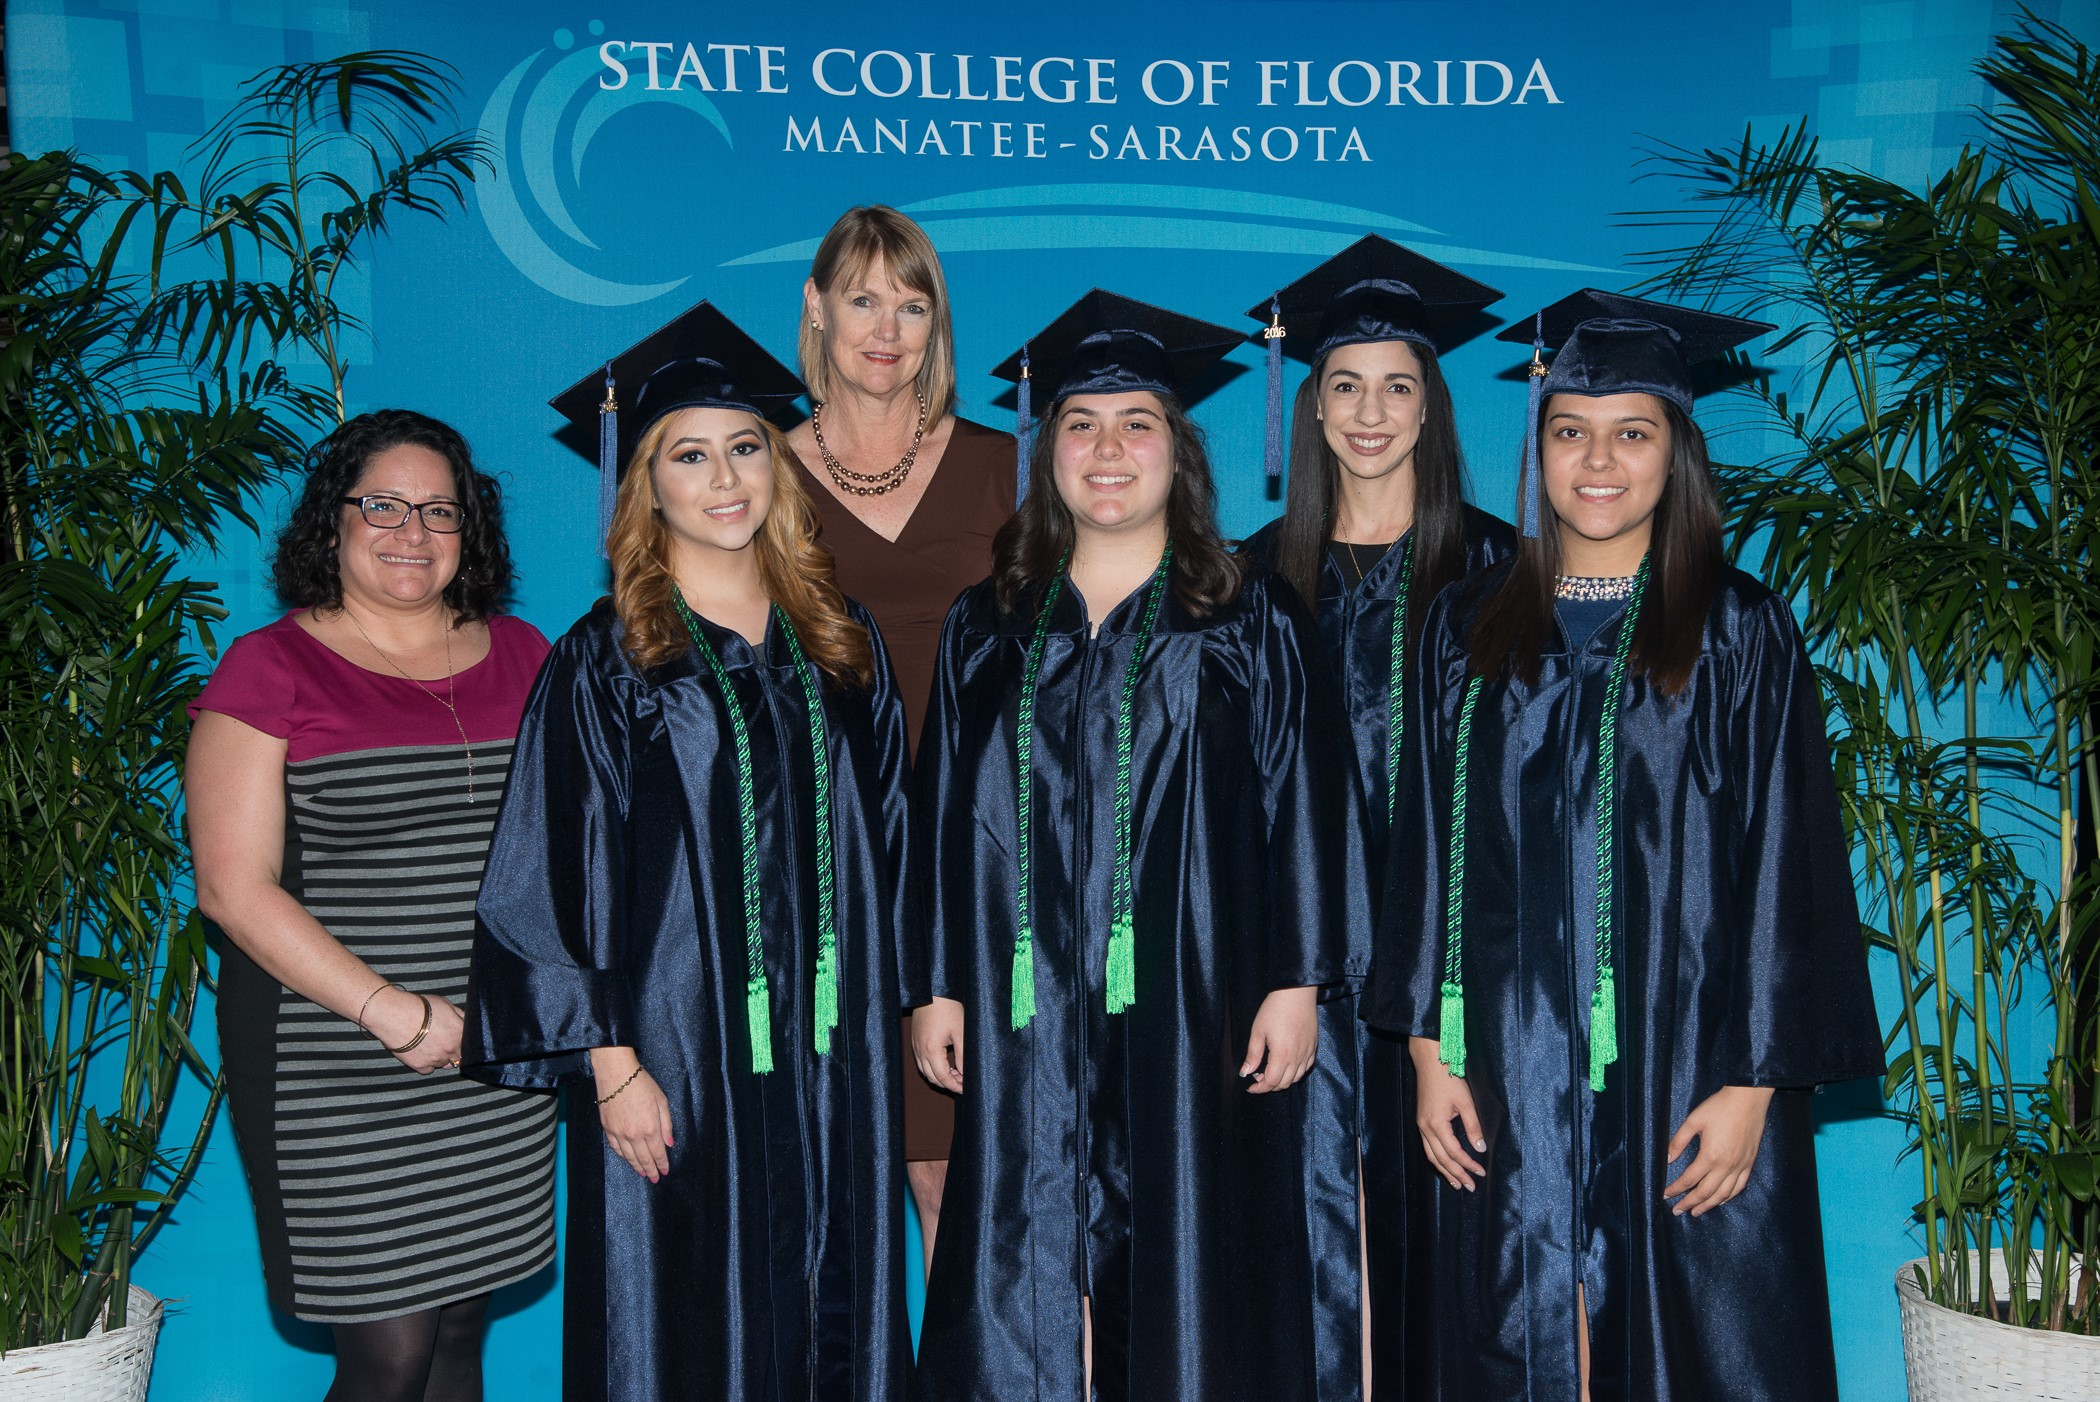 CROP graduates from left Esperanza Martinez-Barrera, Yvette Alanis, Sofia Paschero, and Jessica Trejo are joined by Jessica Torsell, retention specialist for special programs, and Kristen Anderson, program director for special programs, back row.